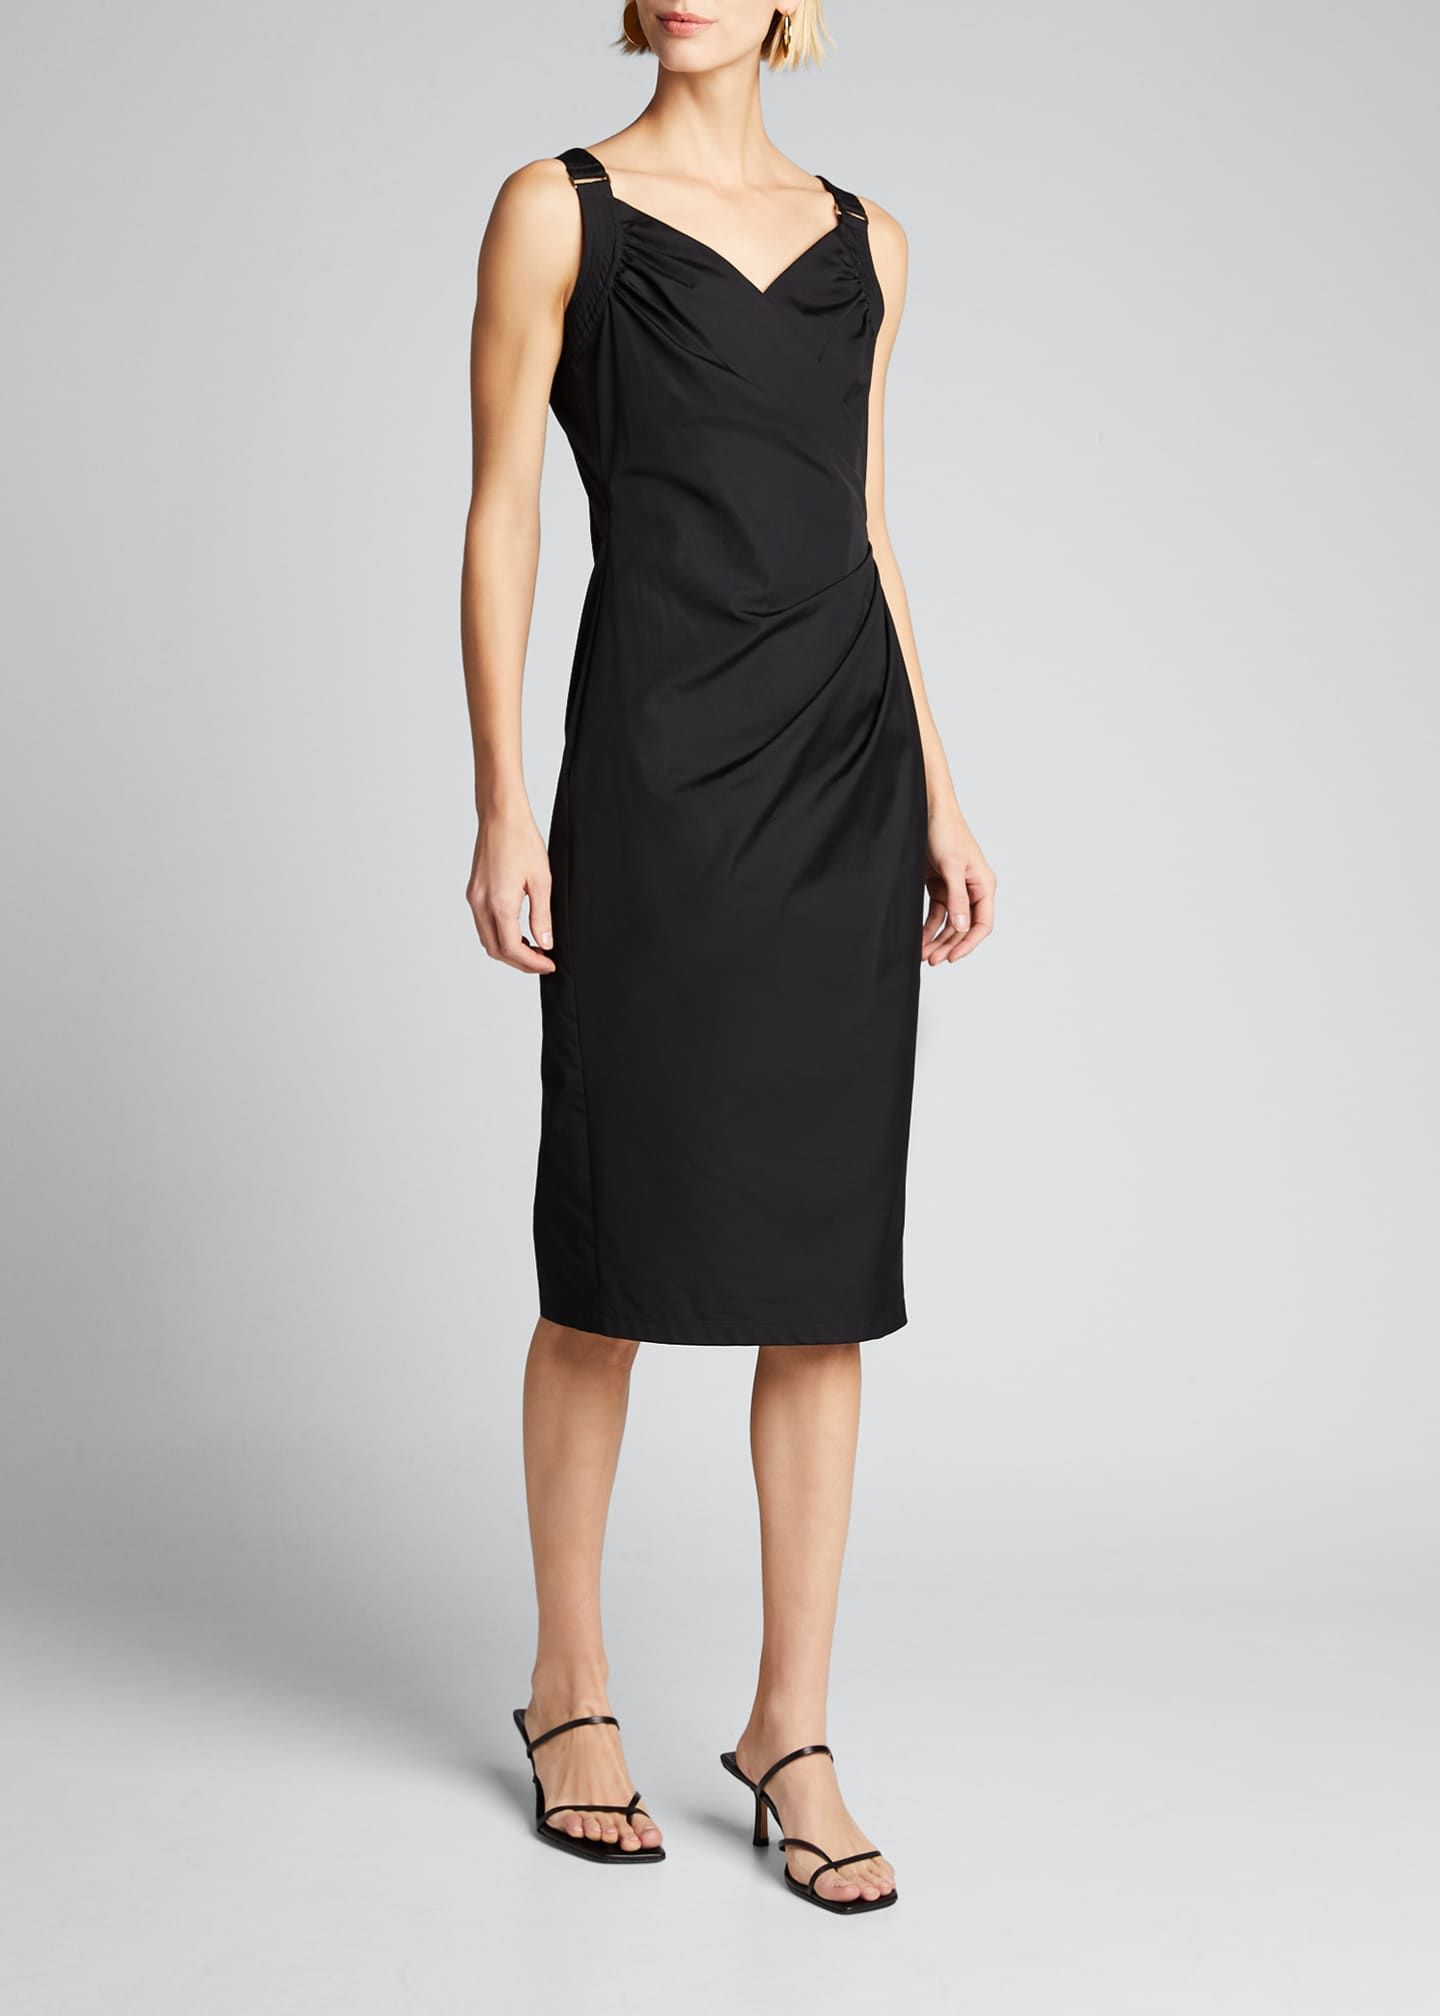 Image 3 of 5: Cotton Poplin Ruched Dress